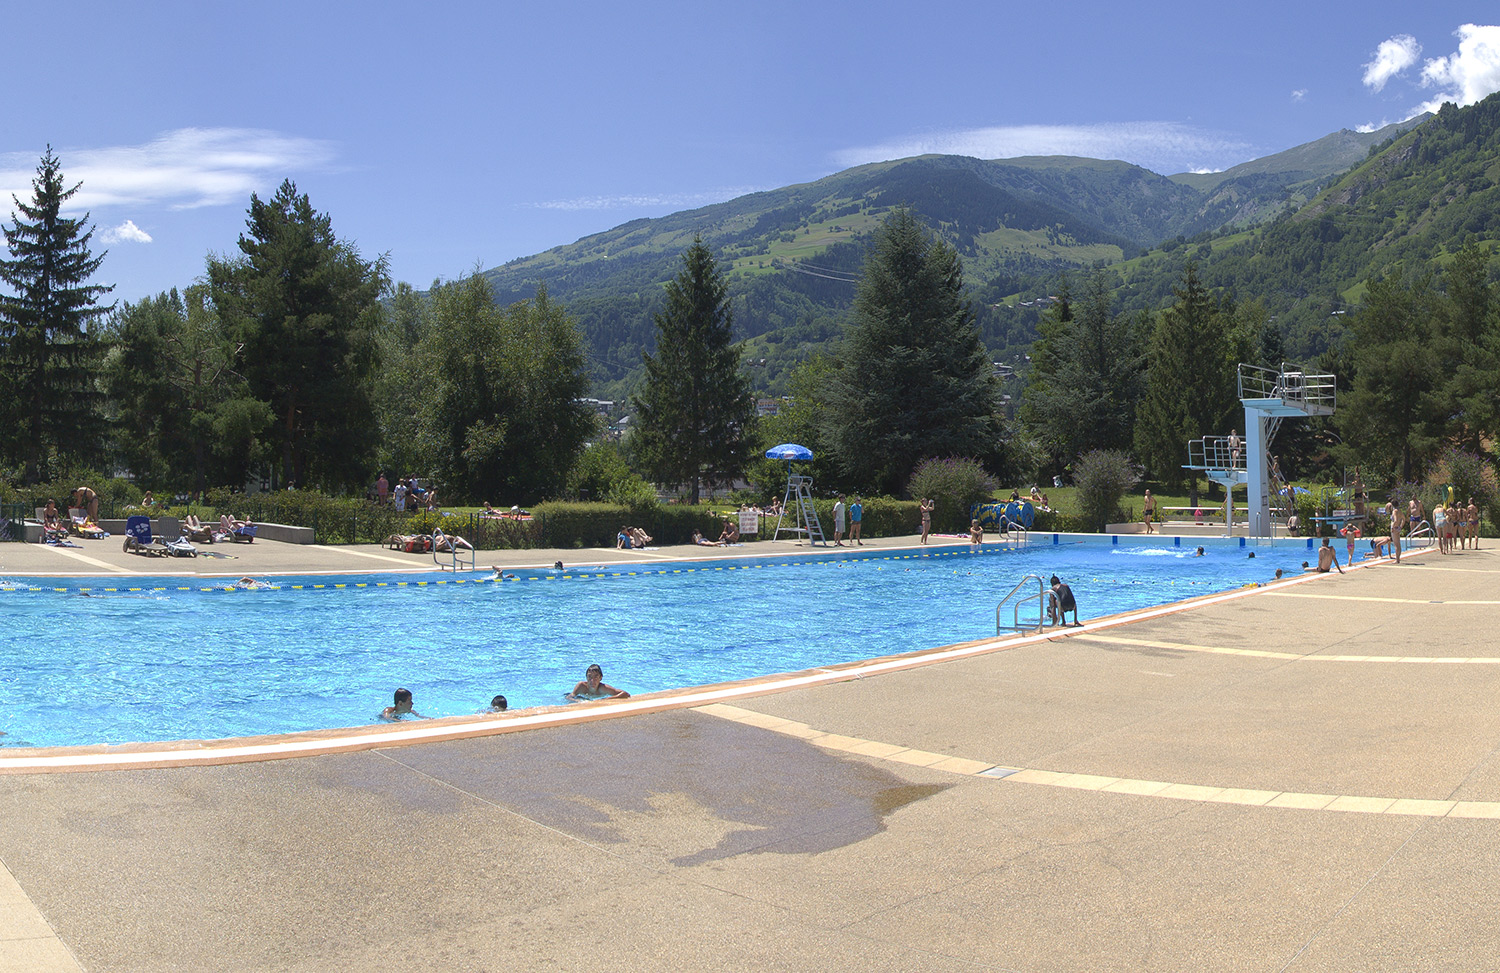 Mairie de bourg saint maurice piscine for Bourg st maurice piscine